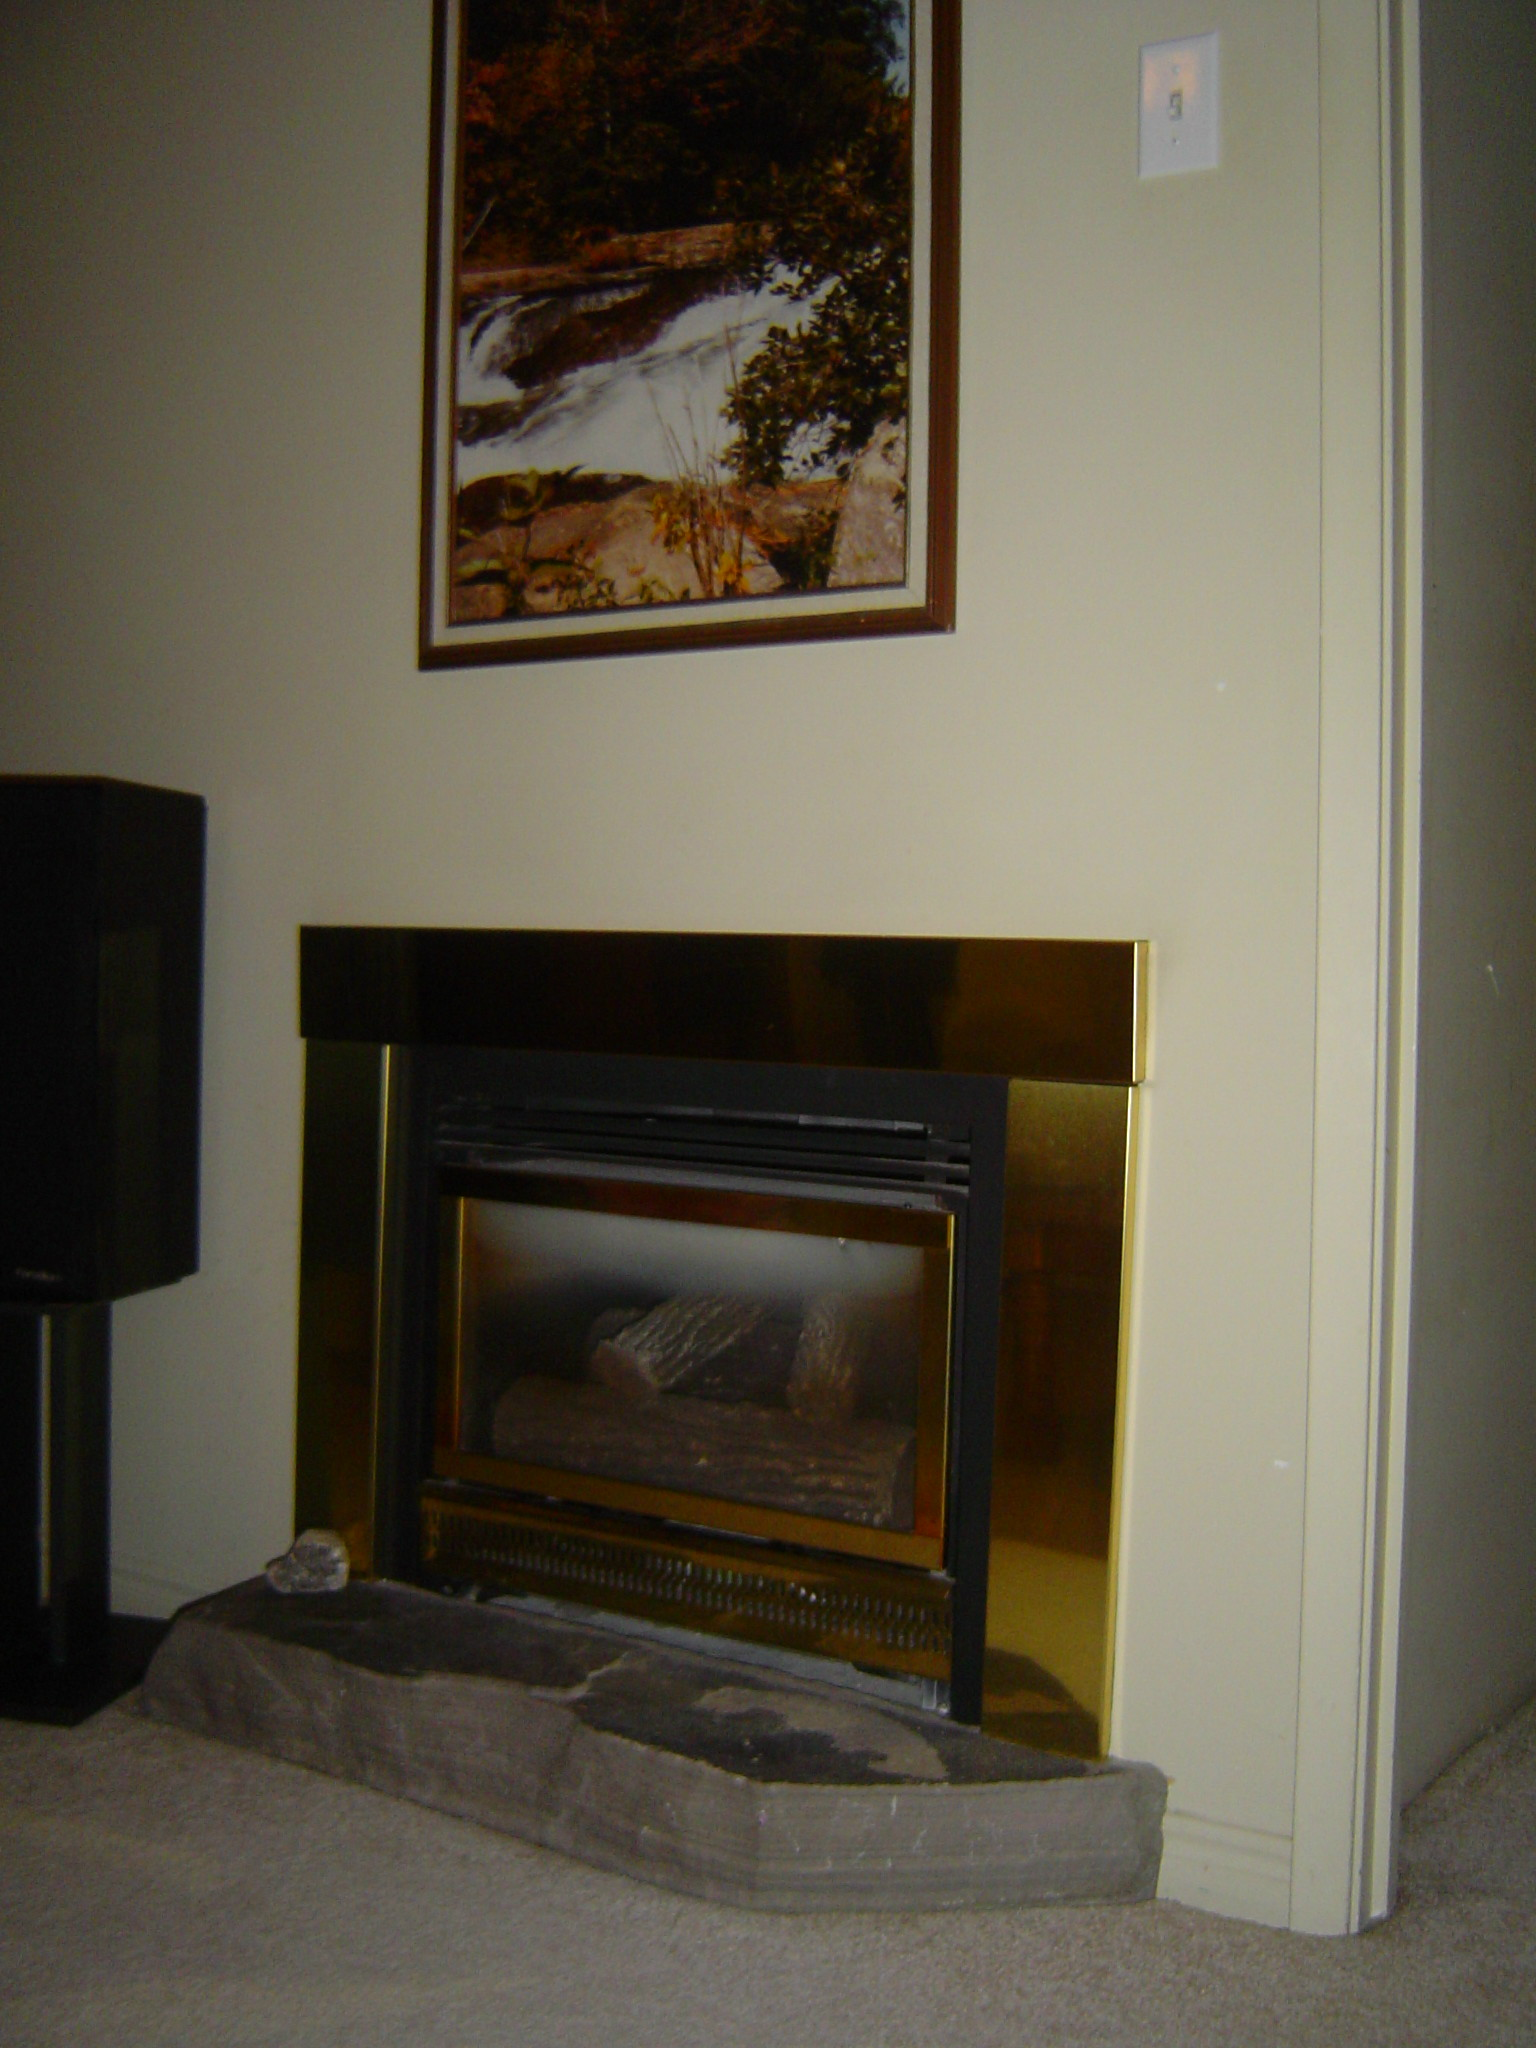 Snuggle up with a good book in front of the gas fireplace